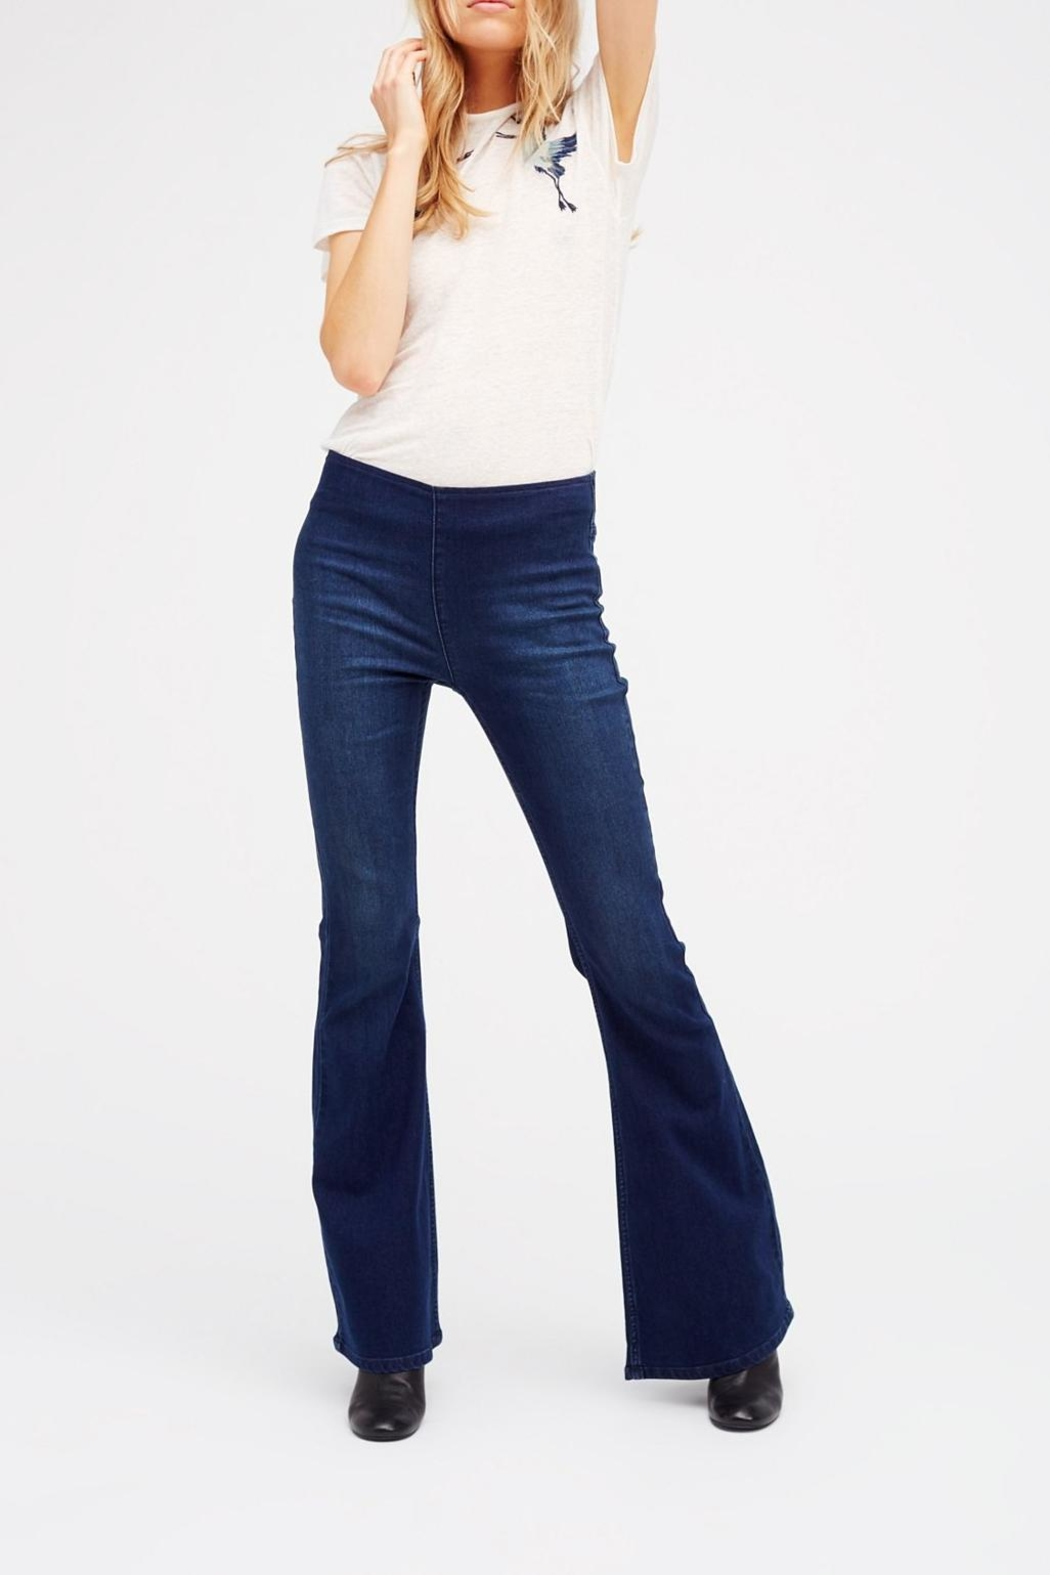 Free People Pull On Flare Jeans - Main Image